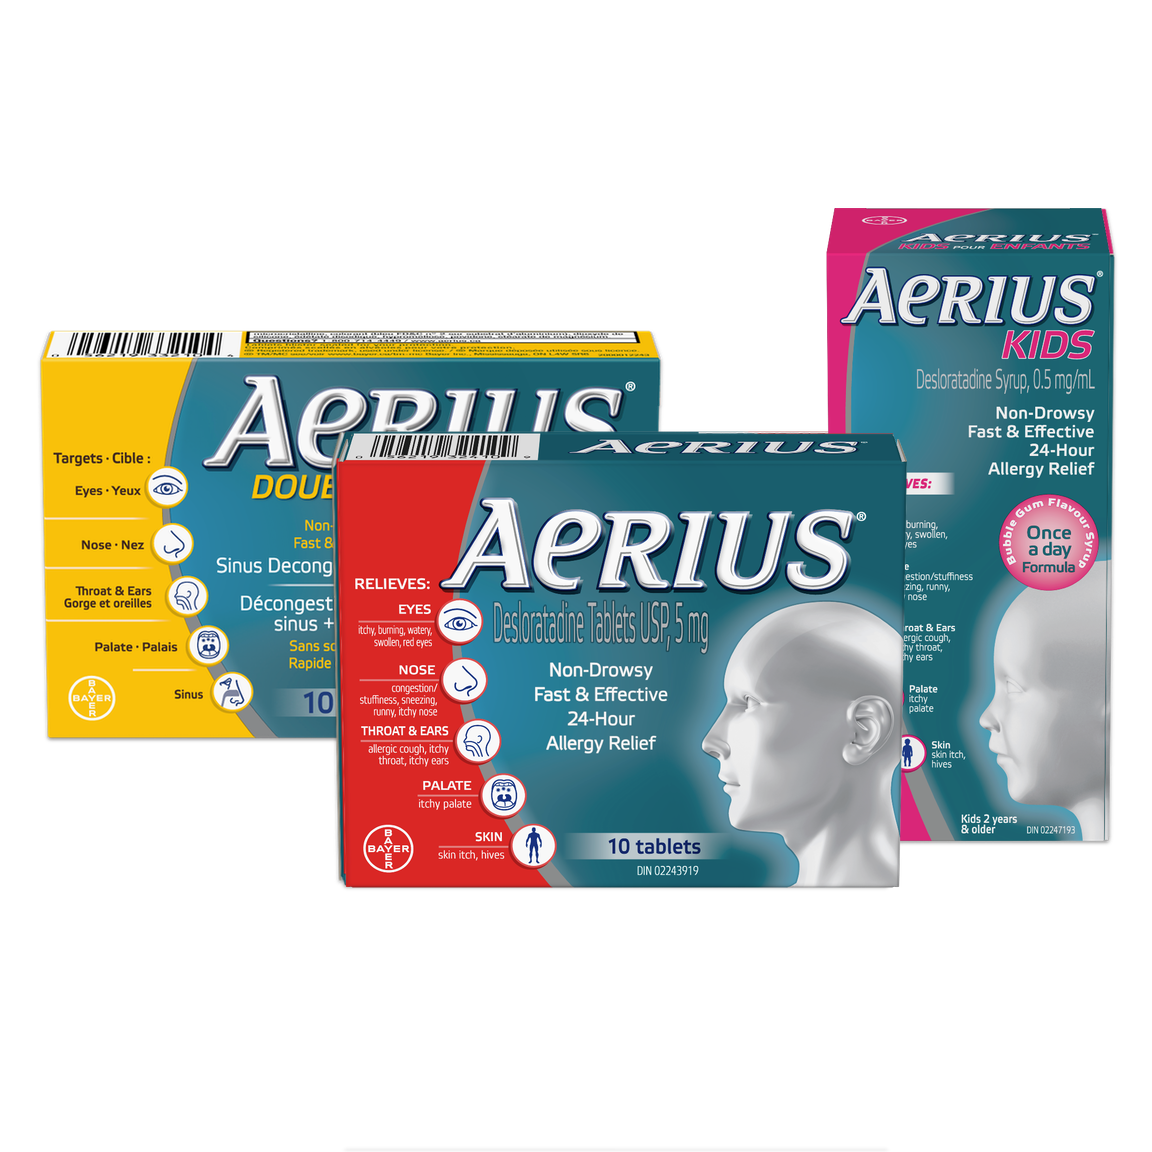 AERIUS – Find a Product